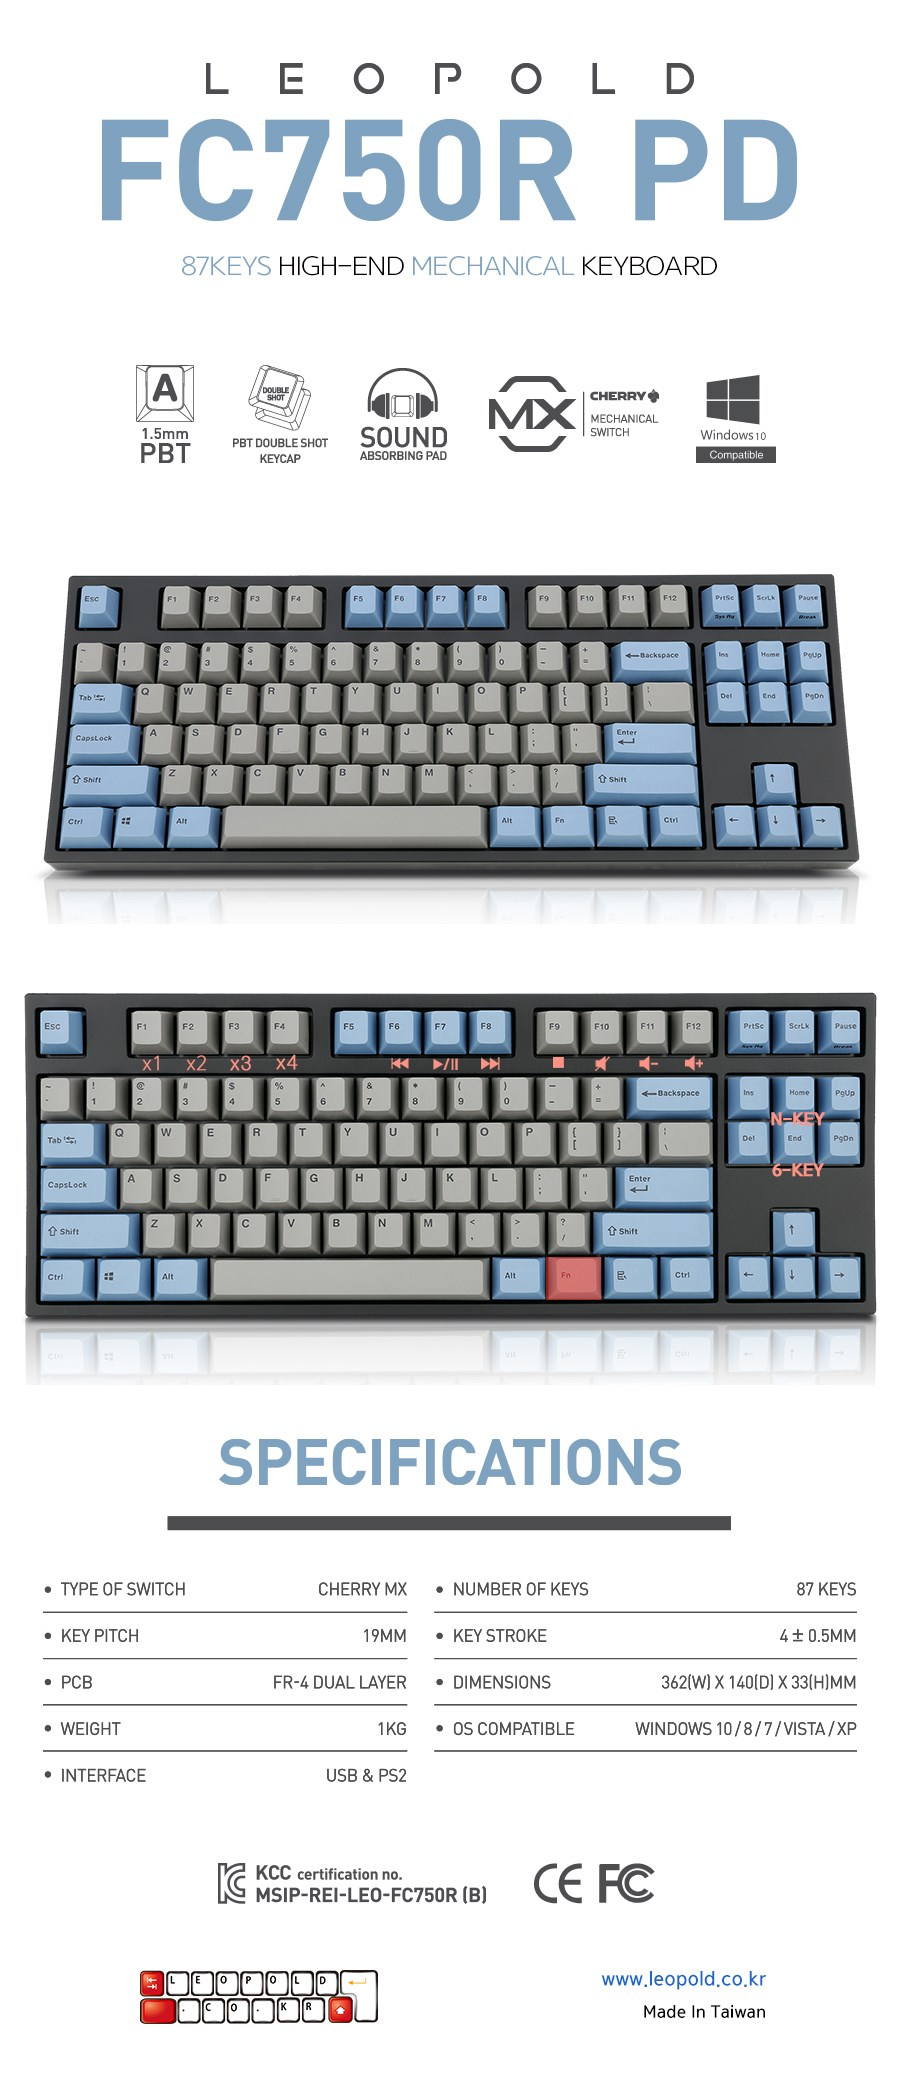 Leopold FC900R PD Blue/Grey Two-Tone Mechanical Keyboard - Cherry MX Silver - Overview 1